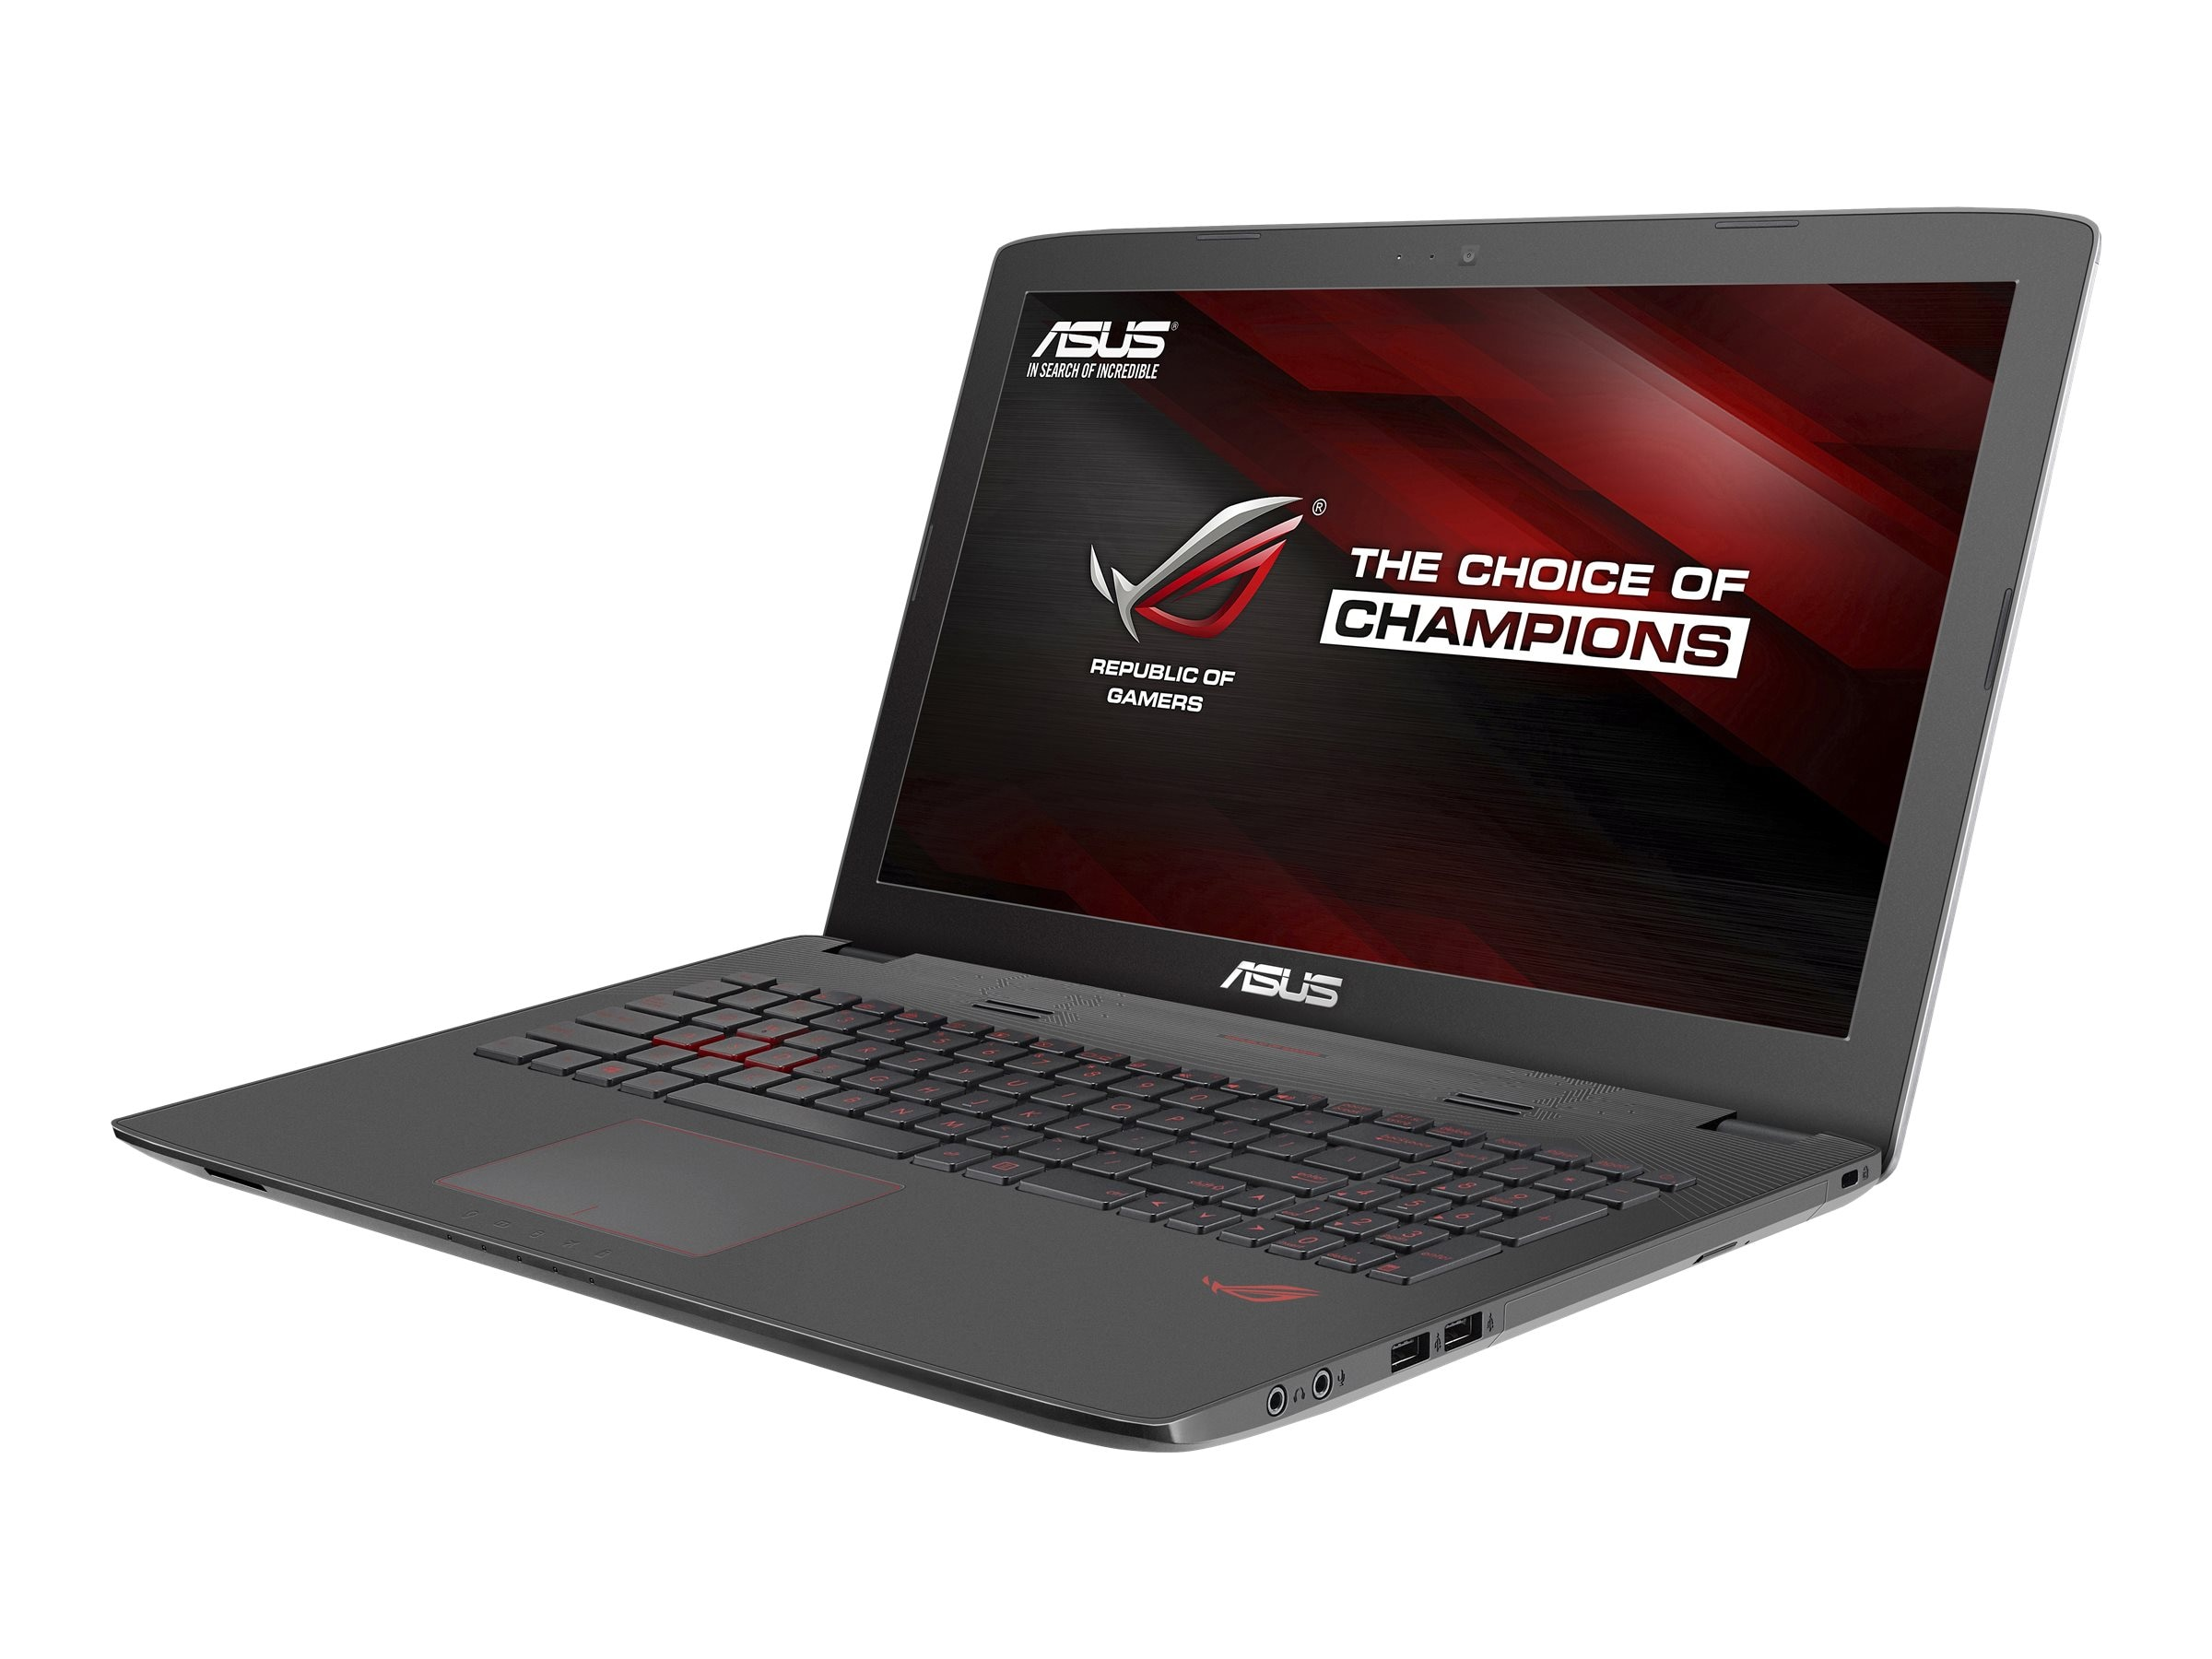 Asus GL752VW-DH74 17.3 Notebook PC